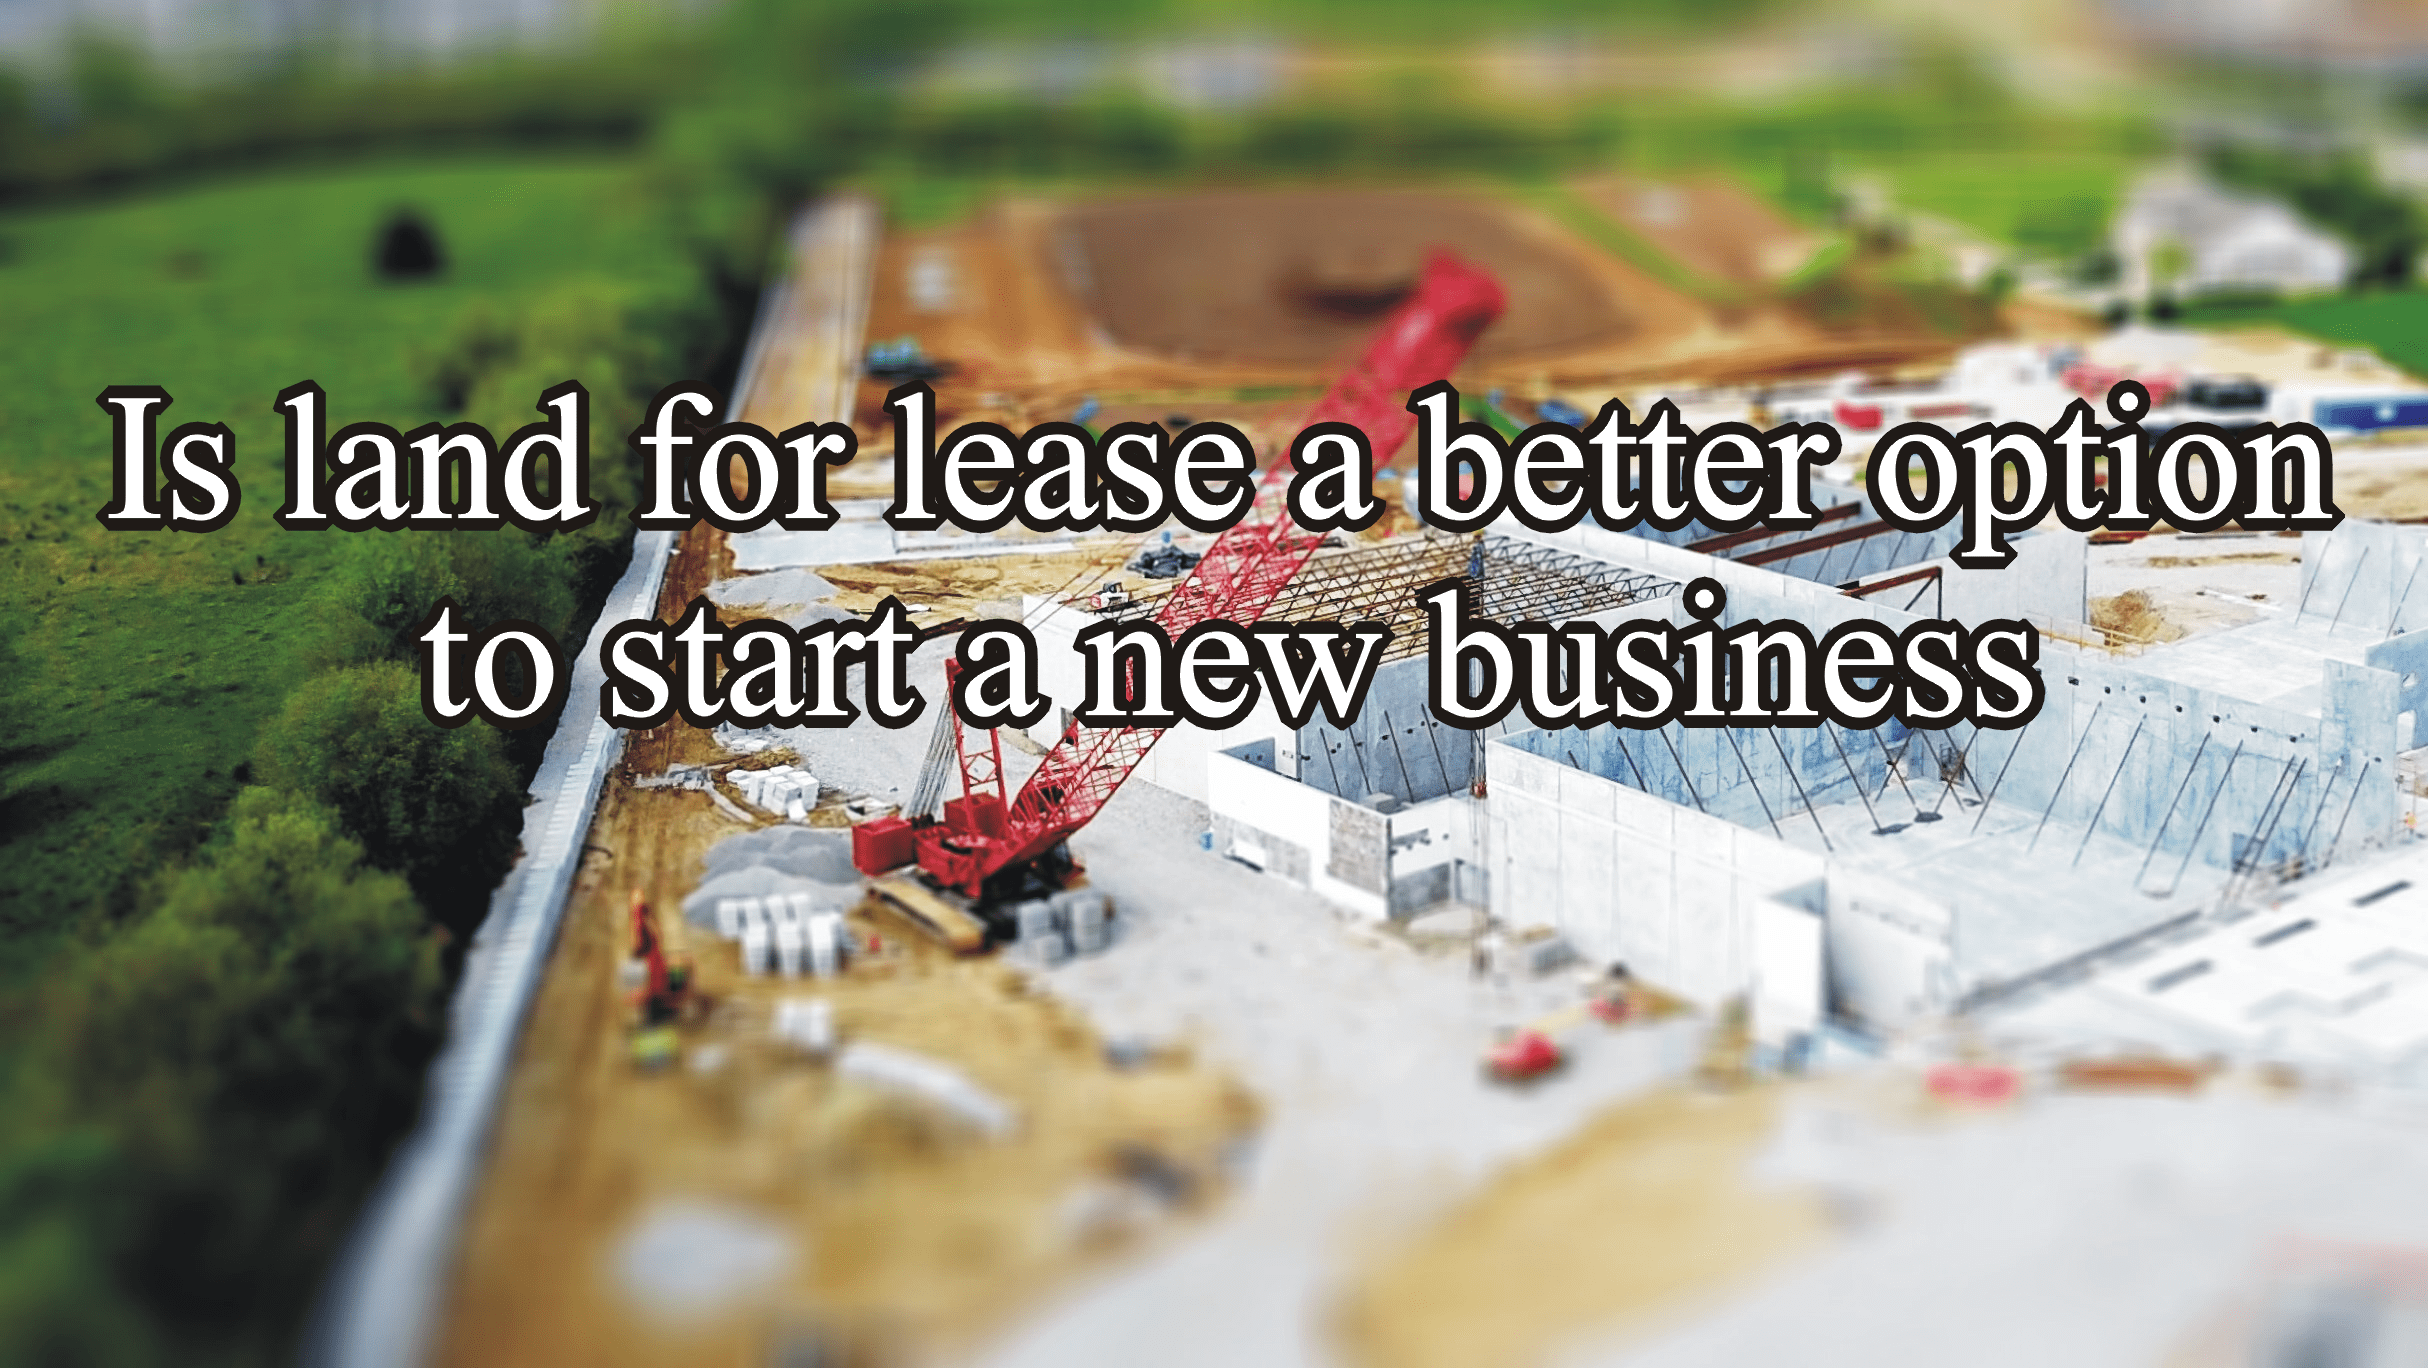 Is land for lease a better option to start a new business